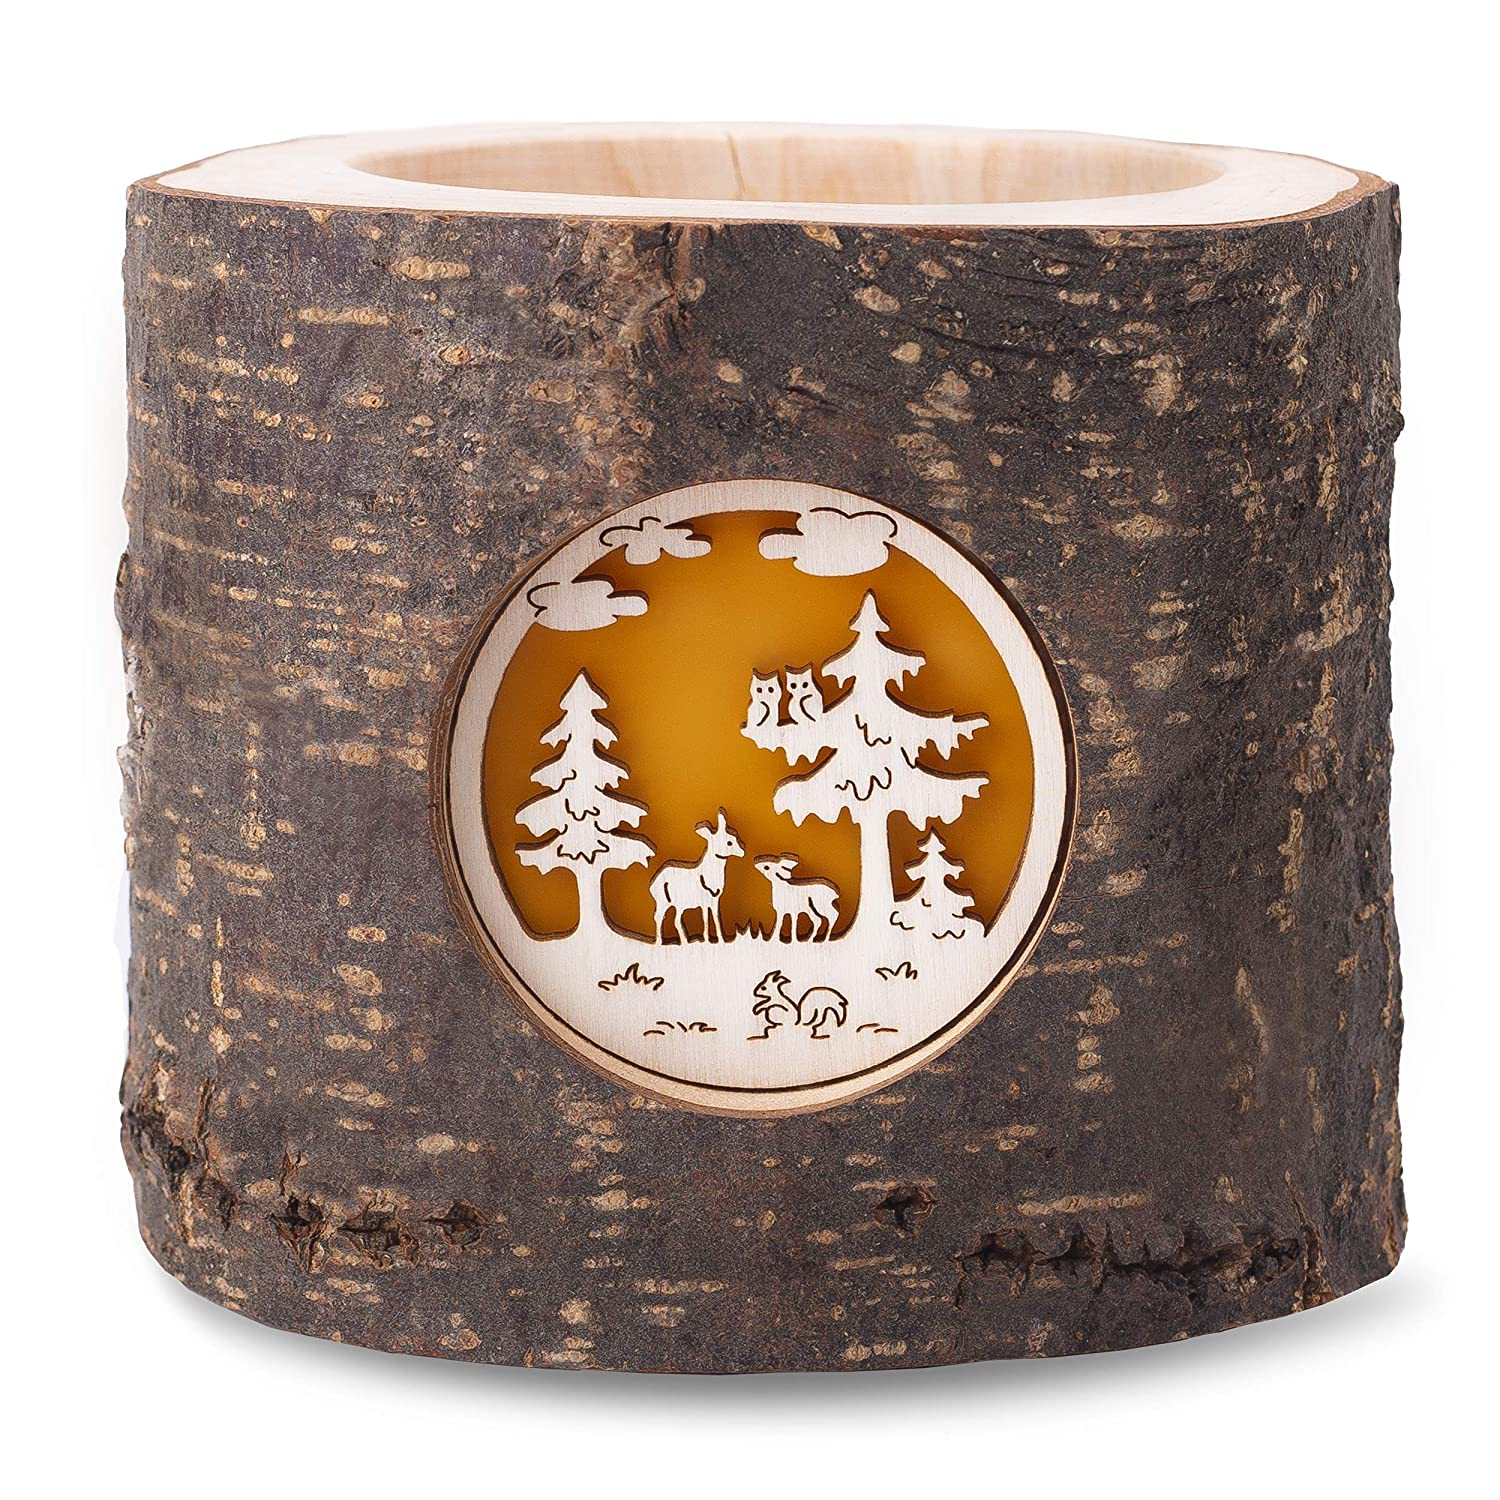 Forest Decor Wood Tealight Candle Holder with Wildlife Scene, Natural Unfinished Bark, Living Room, Bedroom, and Home Decor, Decorative Display, Handmade in Germany